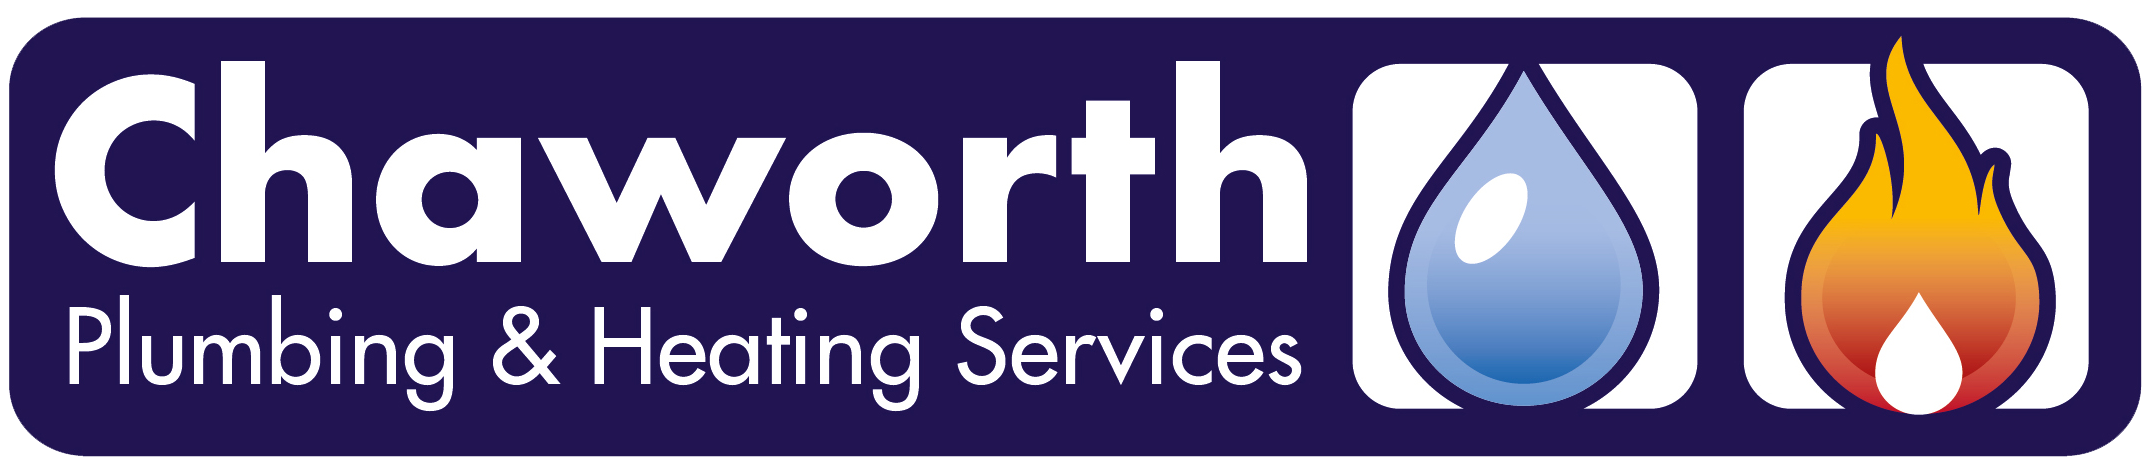 Chaworth Plumbing and Heating Services